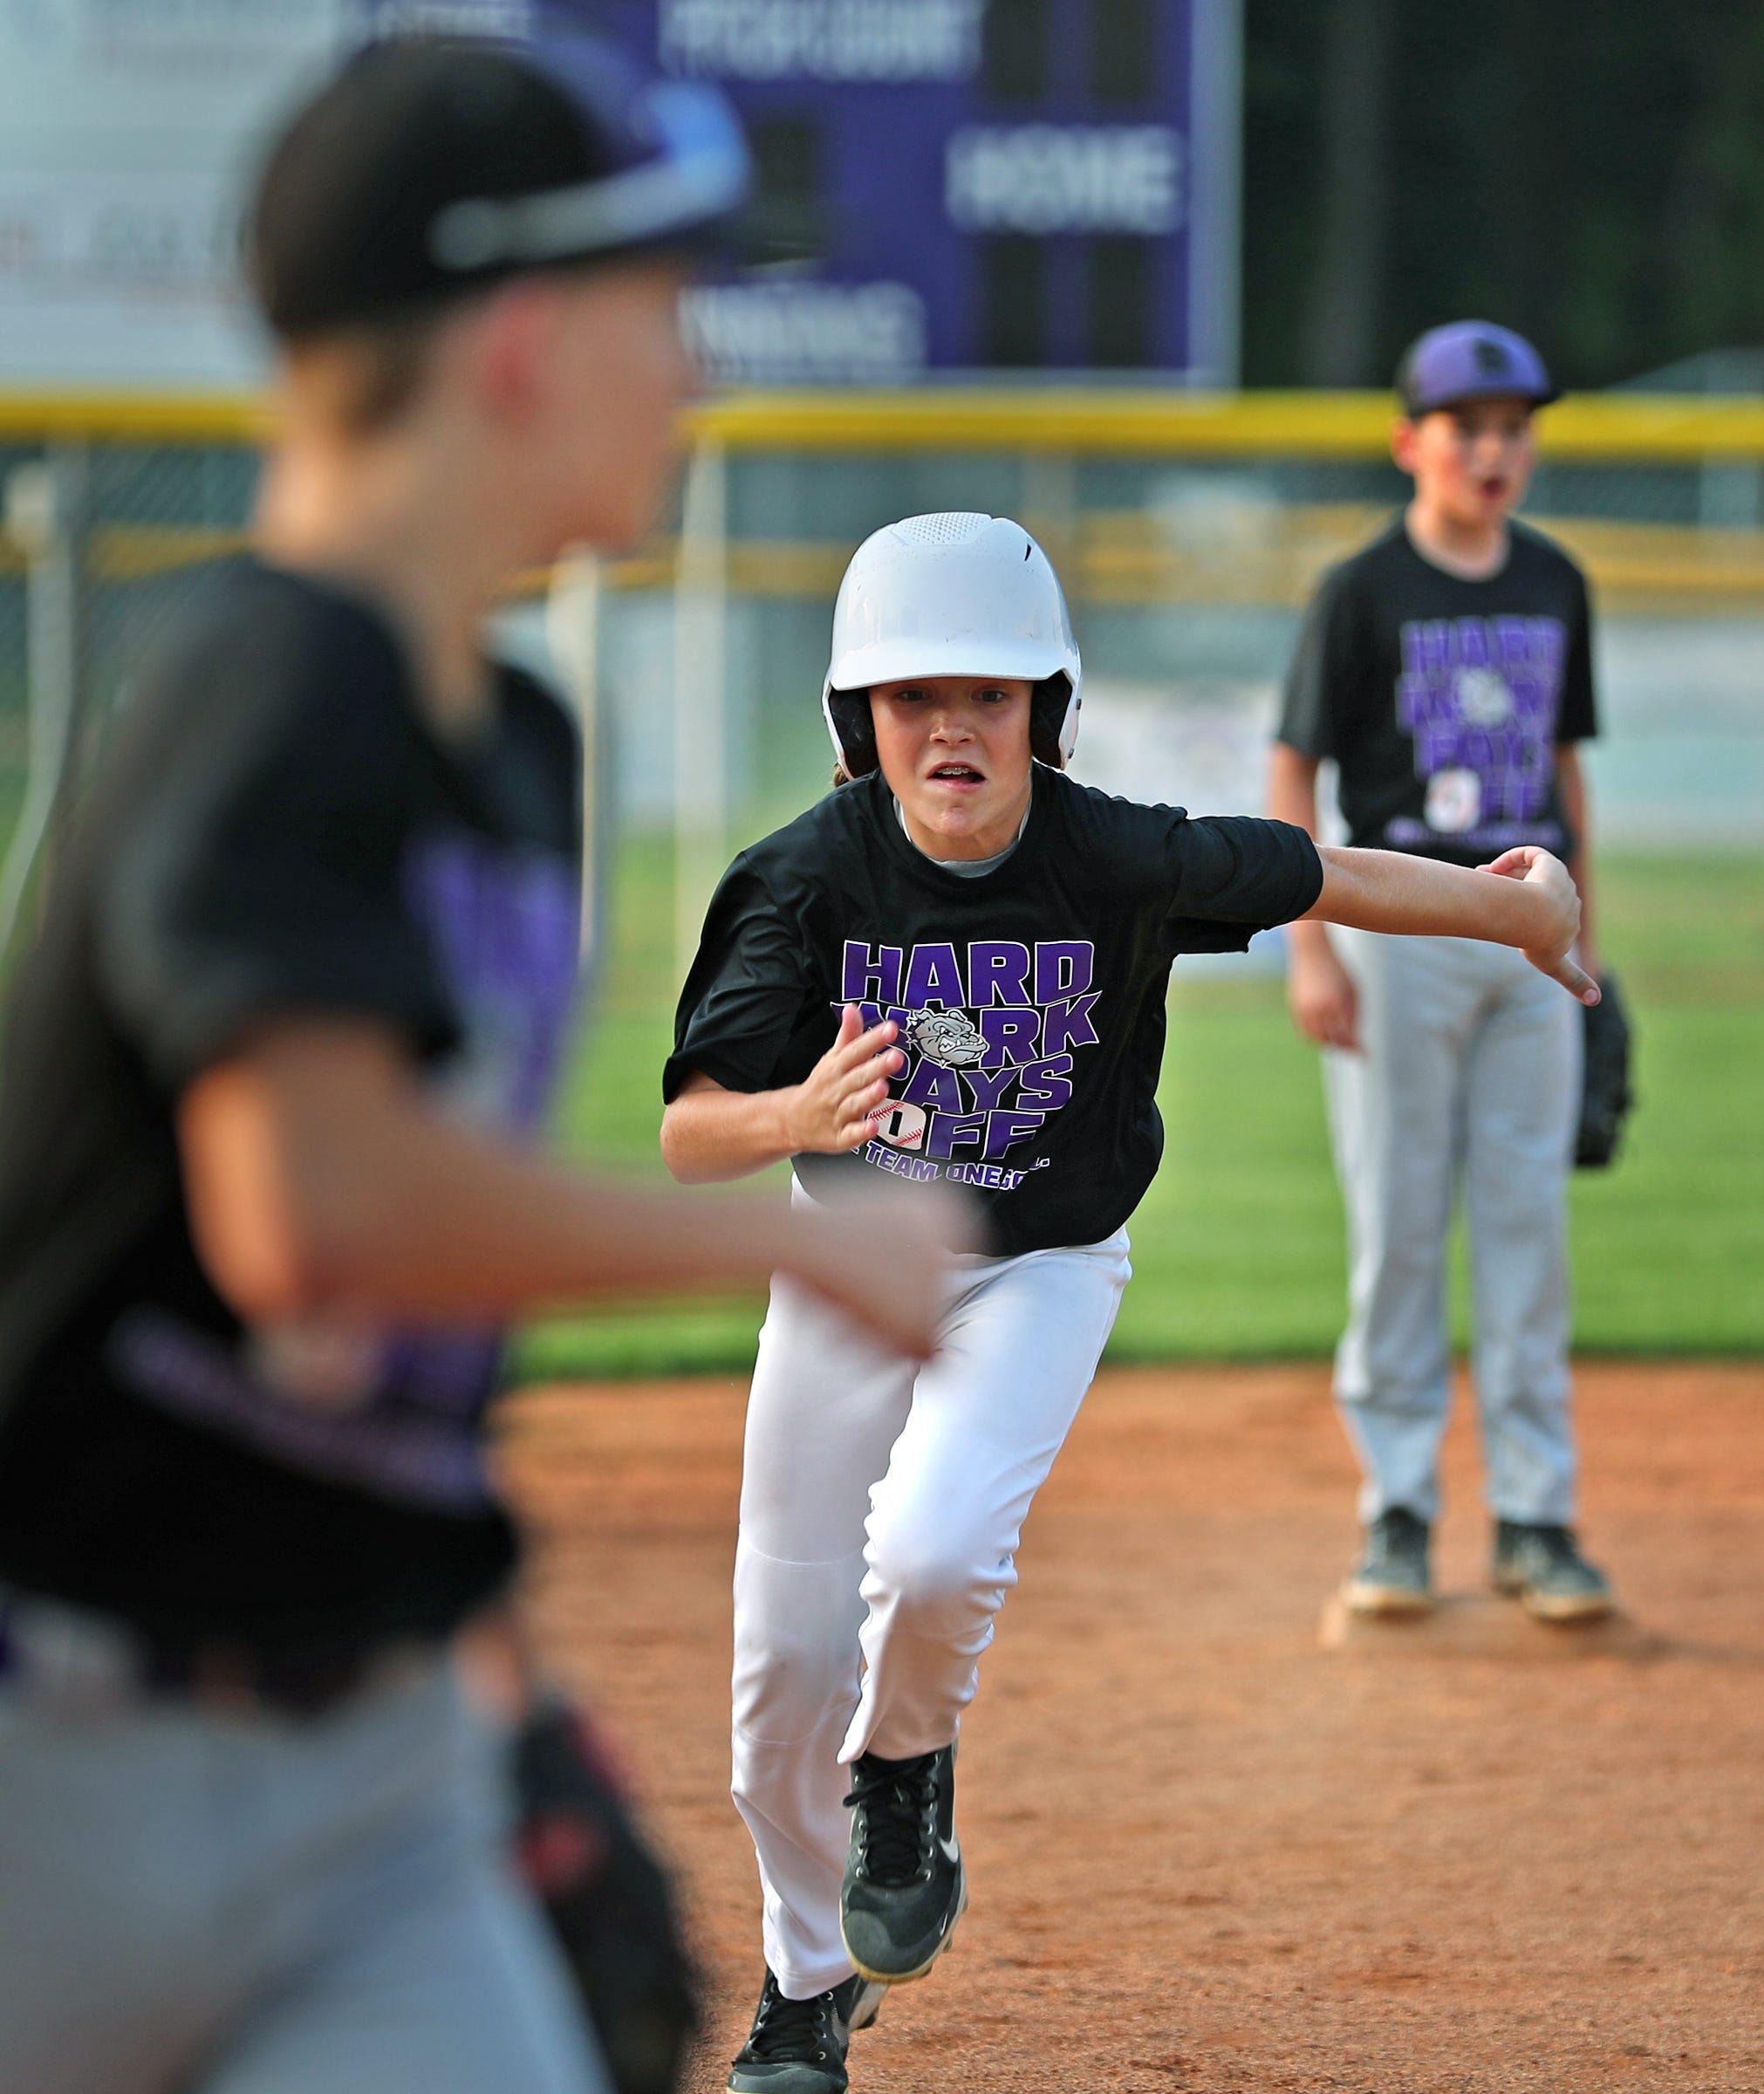 Brownsburg Little League getting ready for regionals